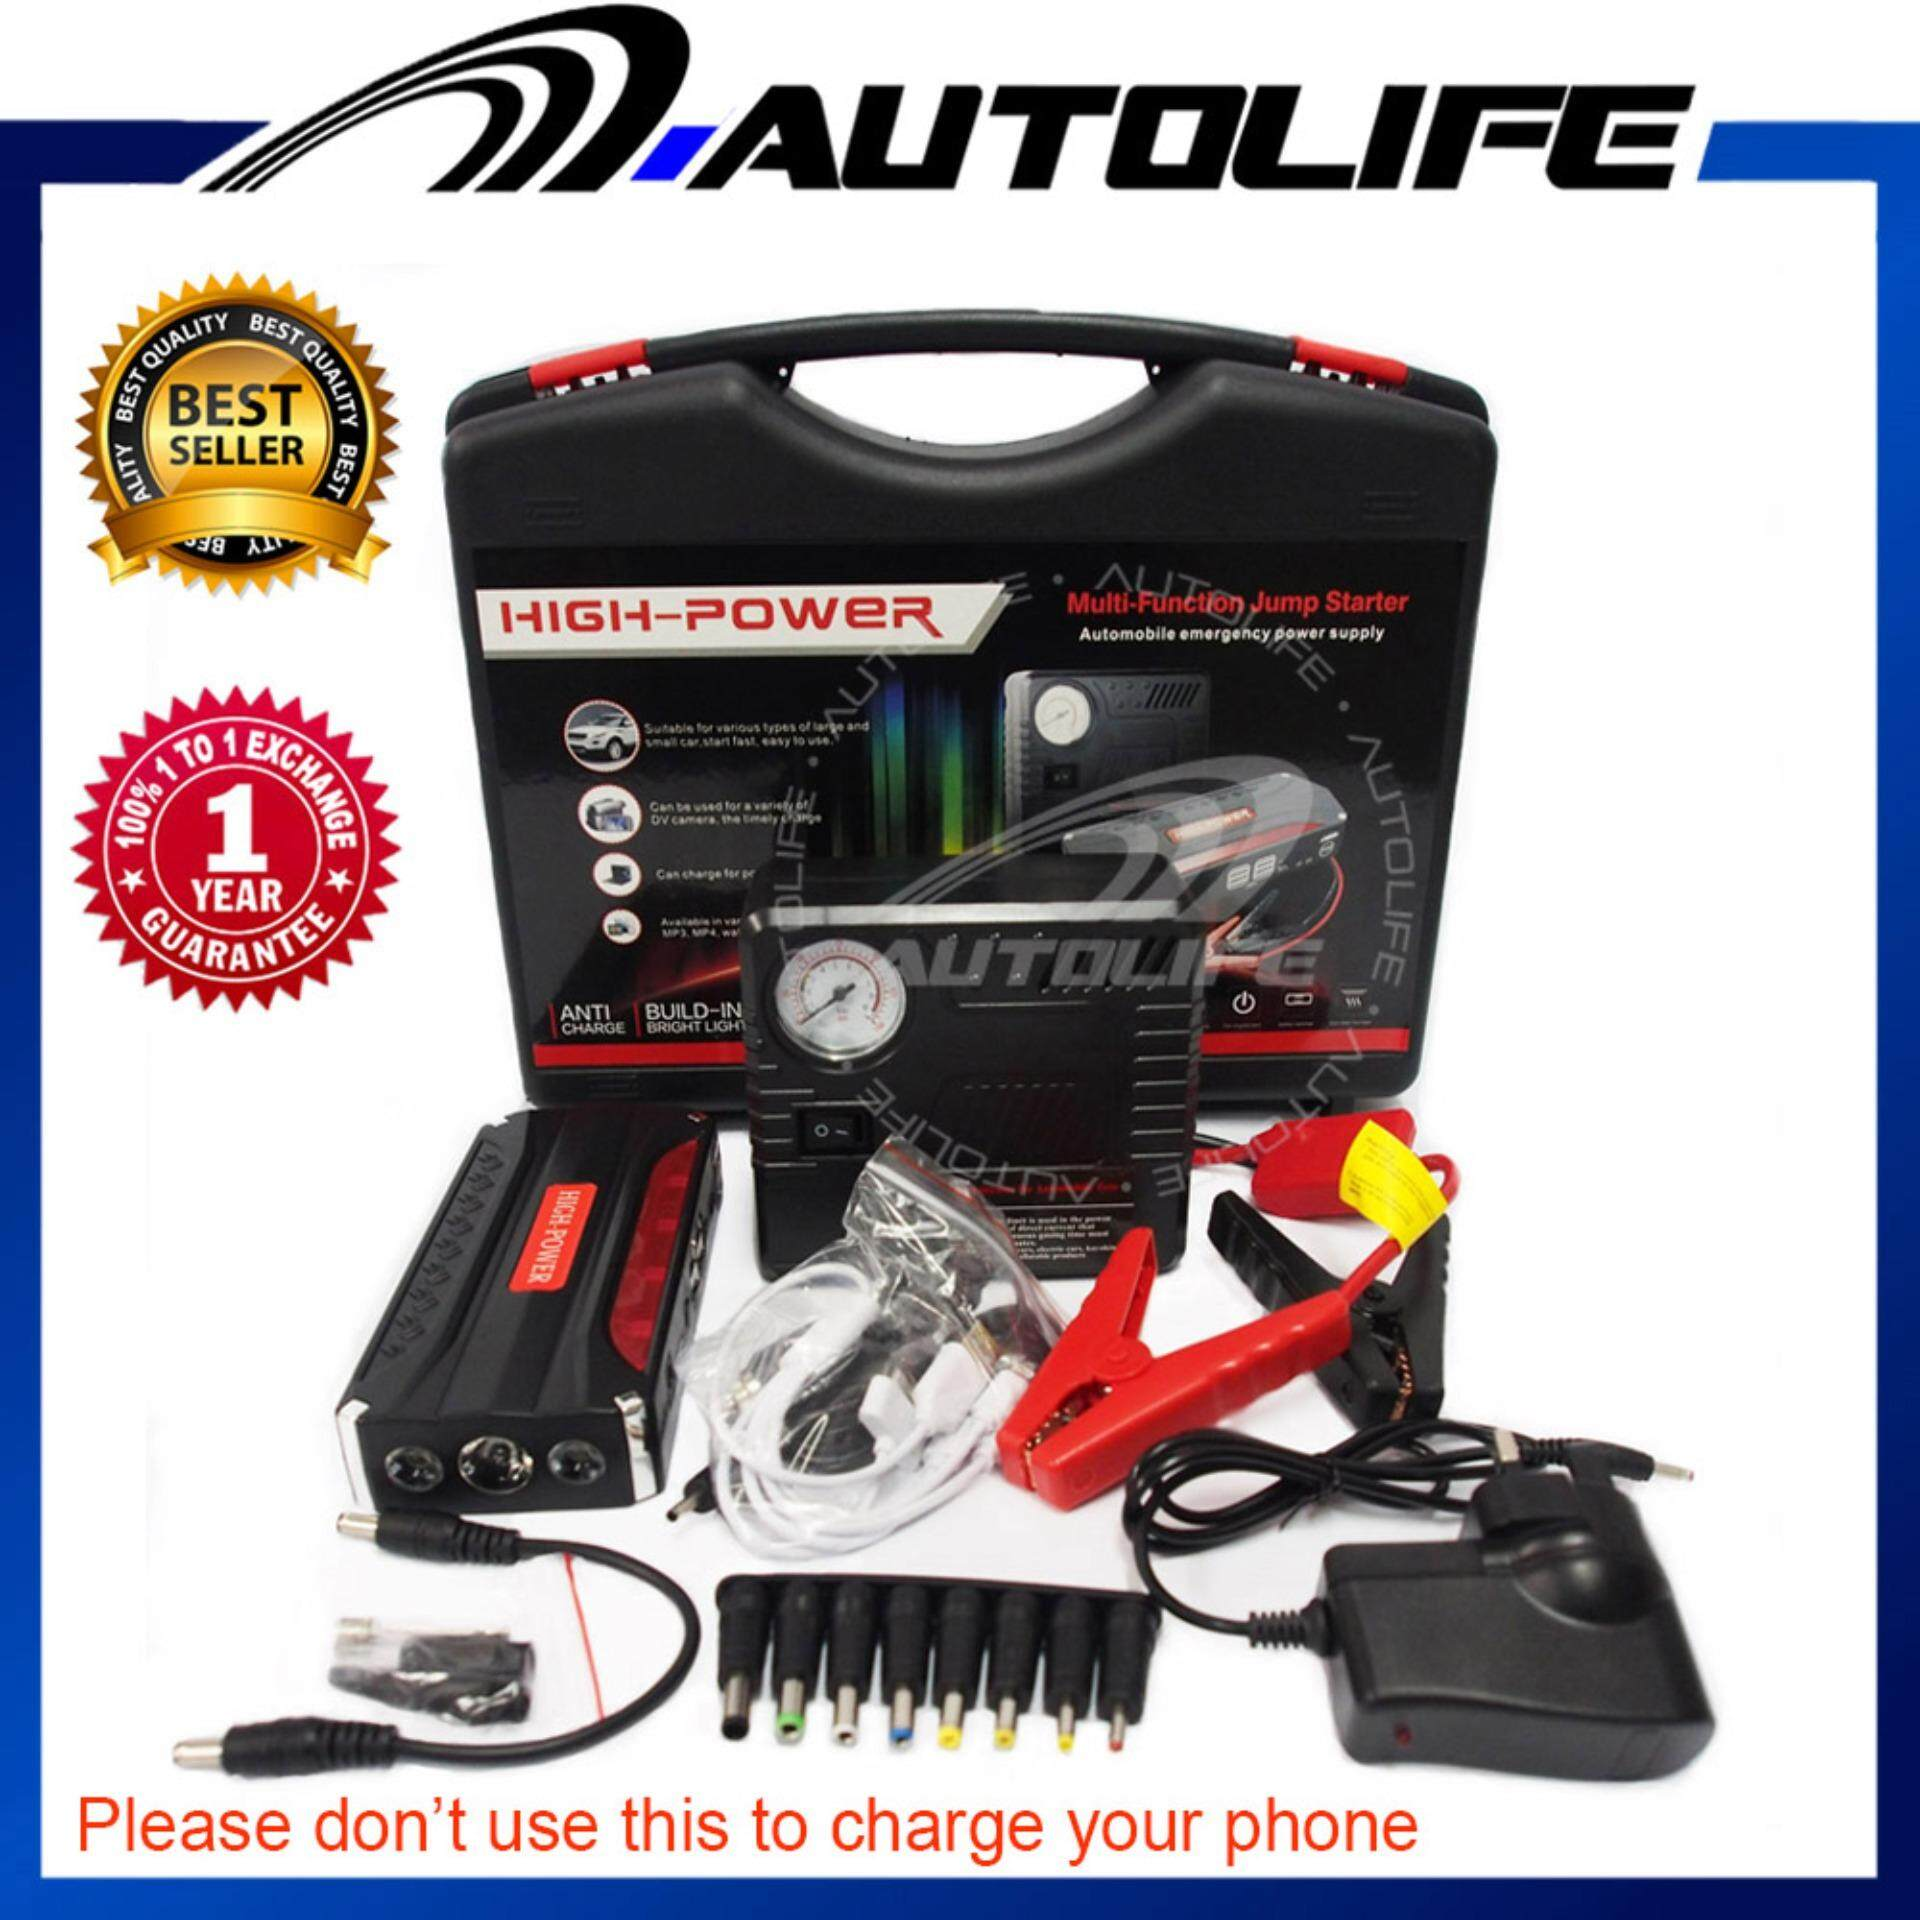 Jump Start Car Power Bank (68800mah) & Tire Inflate Device (emergency Mobile Power Supply) & Emergency Parking Light By Autolife.